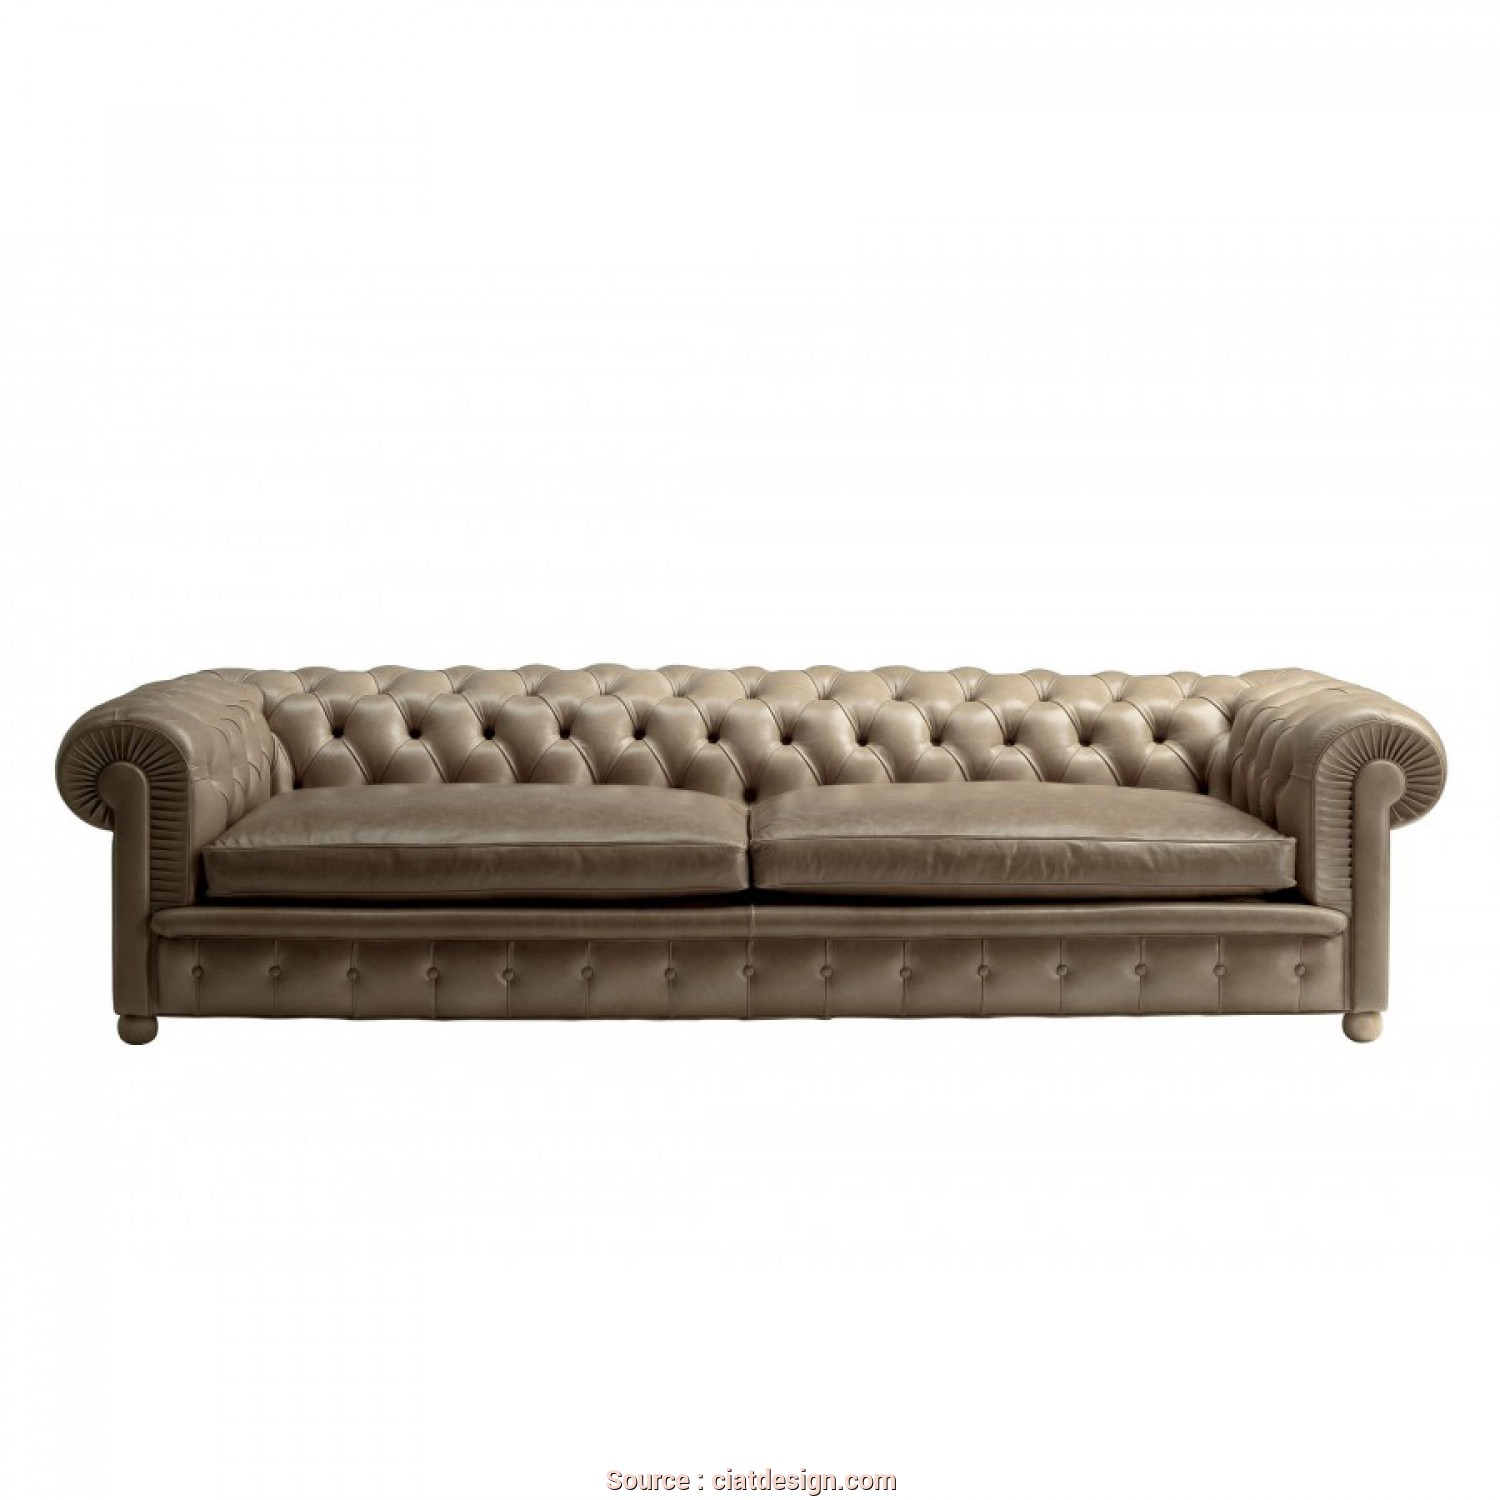 Divano Frau Antico, Stupefacente Chester, 5 Seater Sofa By Poltrona Frau. Design By Renzo Frau Shop Online On CiatDesign